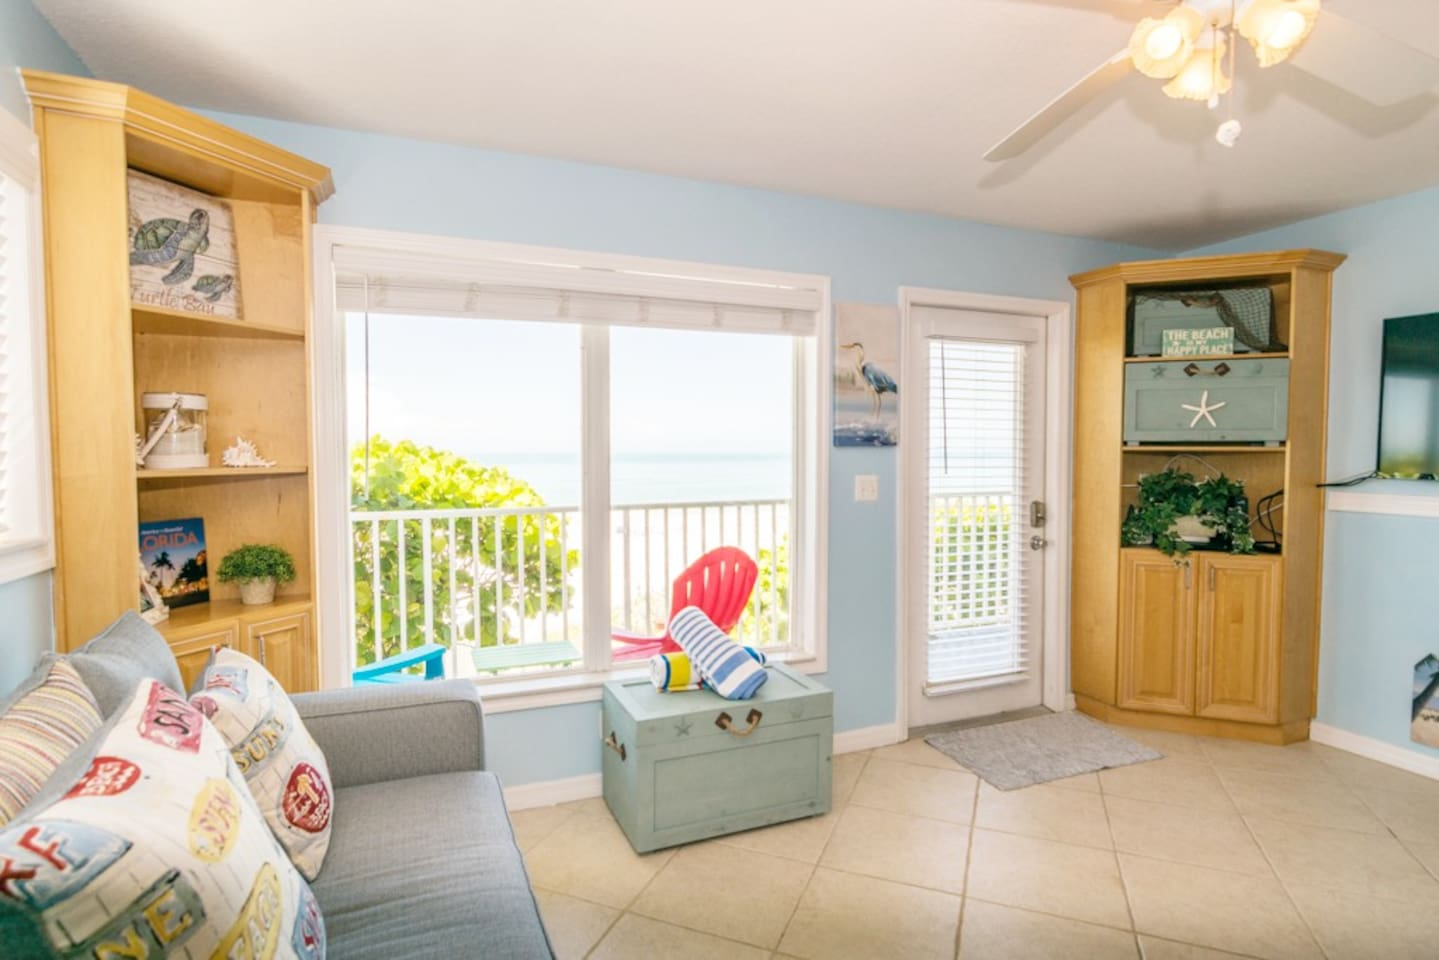 Cozy beachfront bliss! Enjoy viewing the beach right from your living room or sit out on the porch and relax to the hum of the waves.